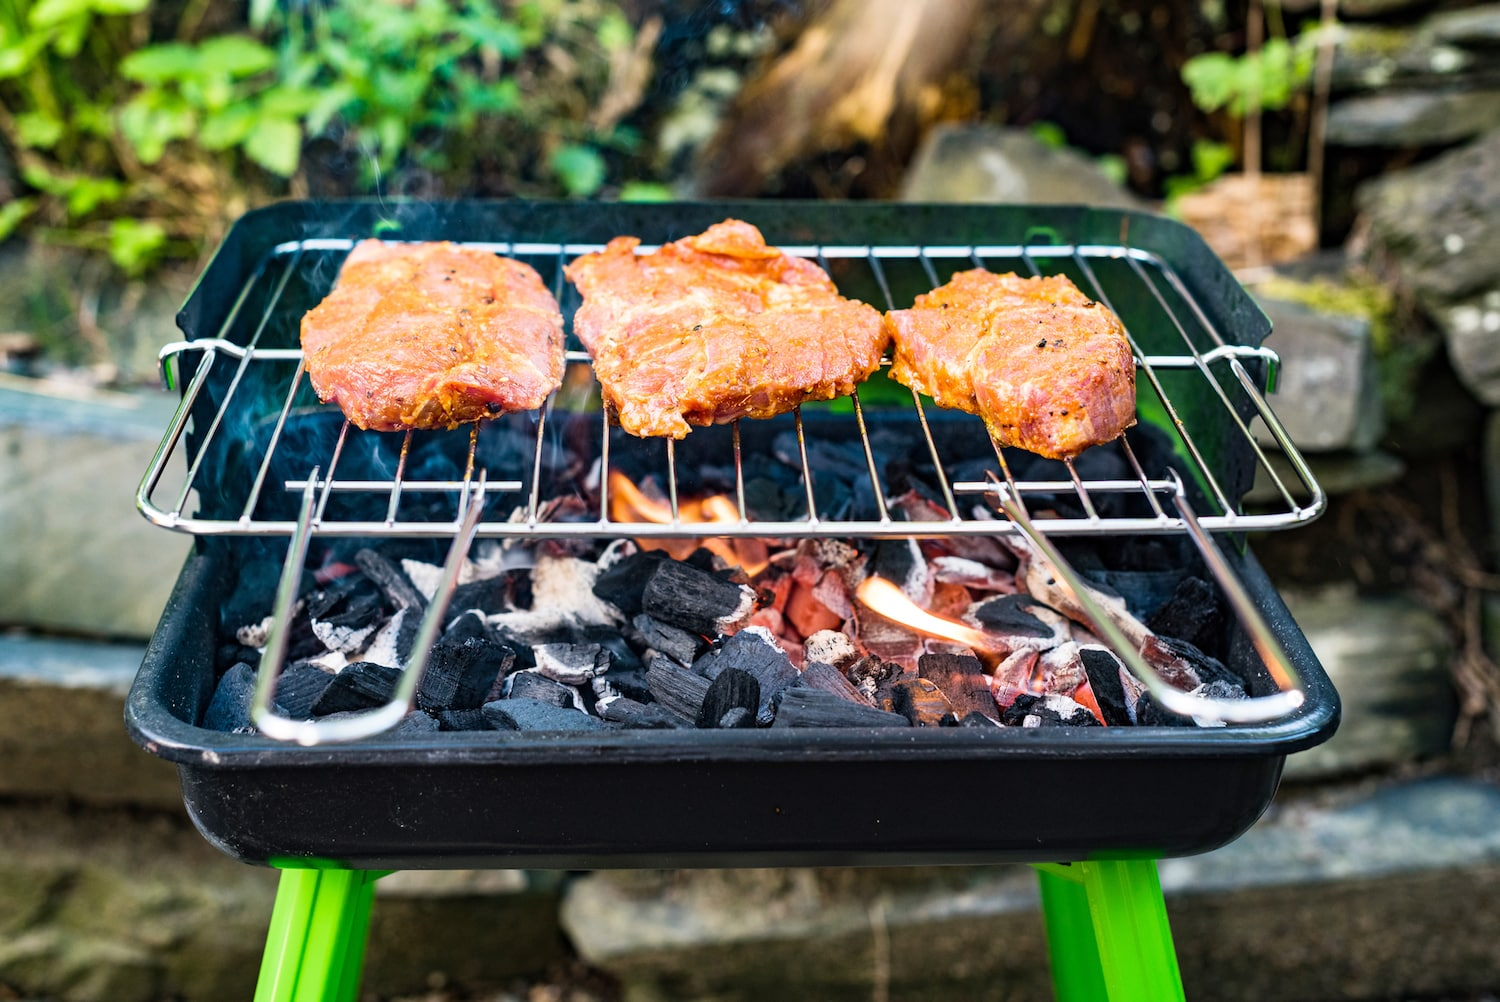 steaks on charcoal barbecue with flames